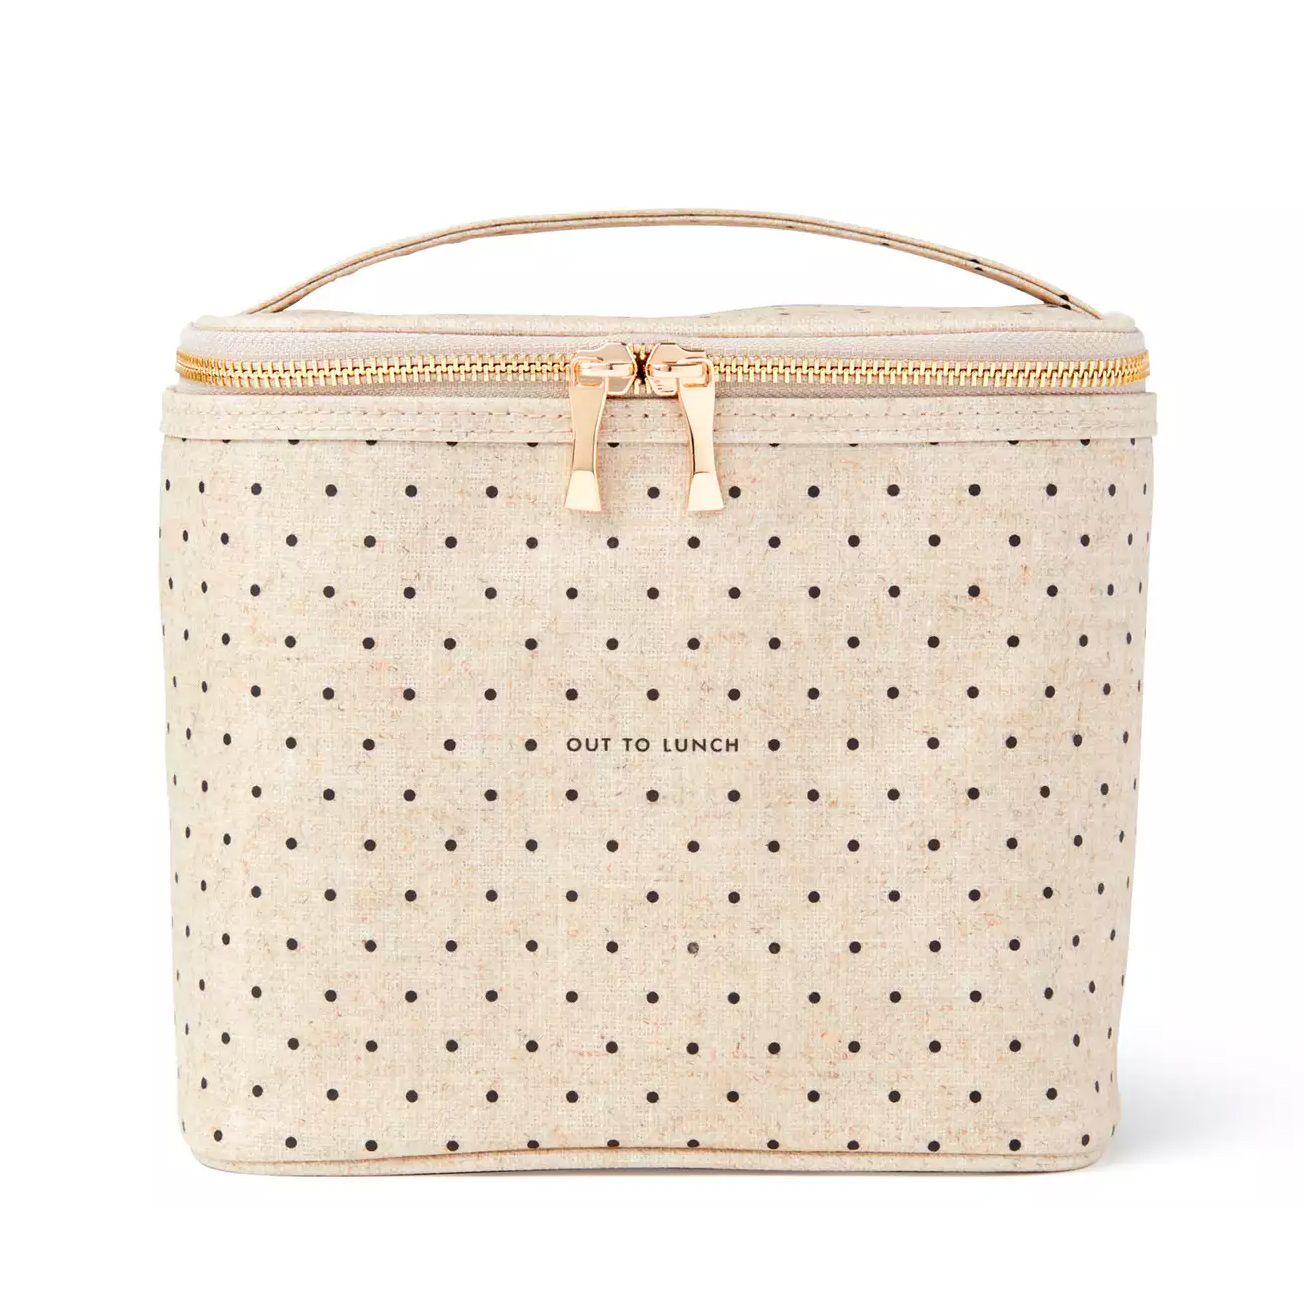 Out to Lunch Tote